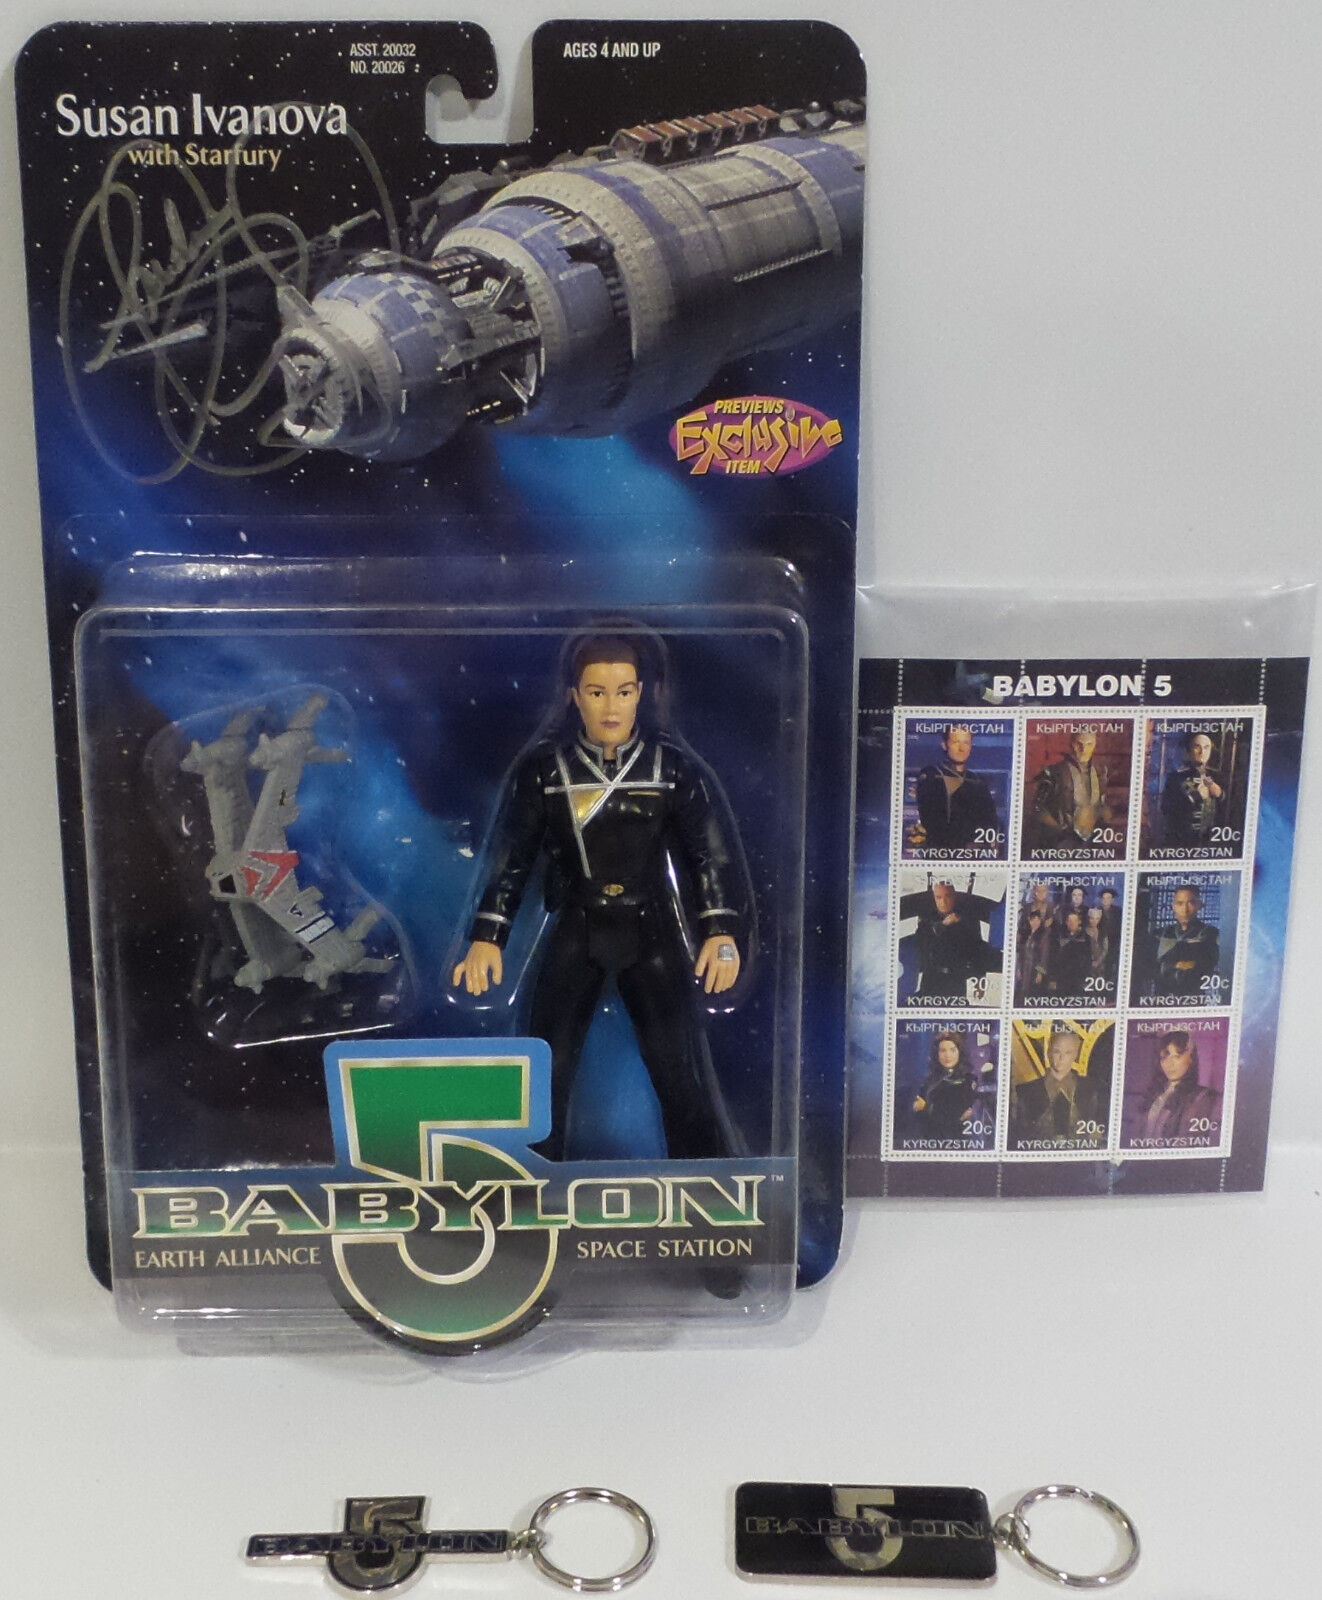 BABYLON 5 :  SUSAN IVANOVA ACTION FIGURE SIGNED BY CLAUDIA CHRISTIAN + KEY RINGS